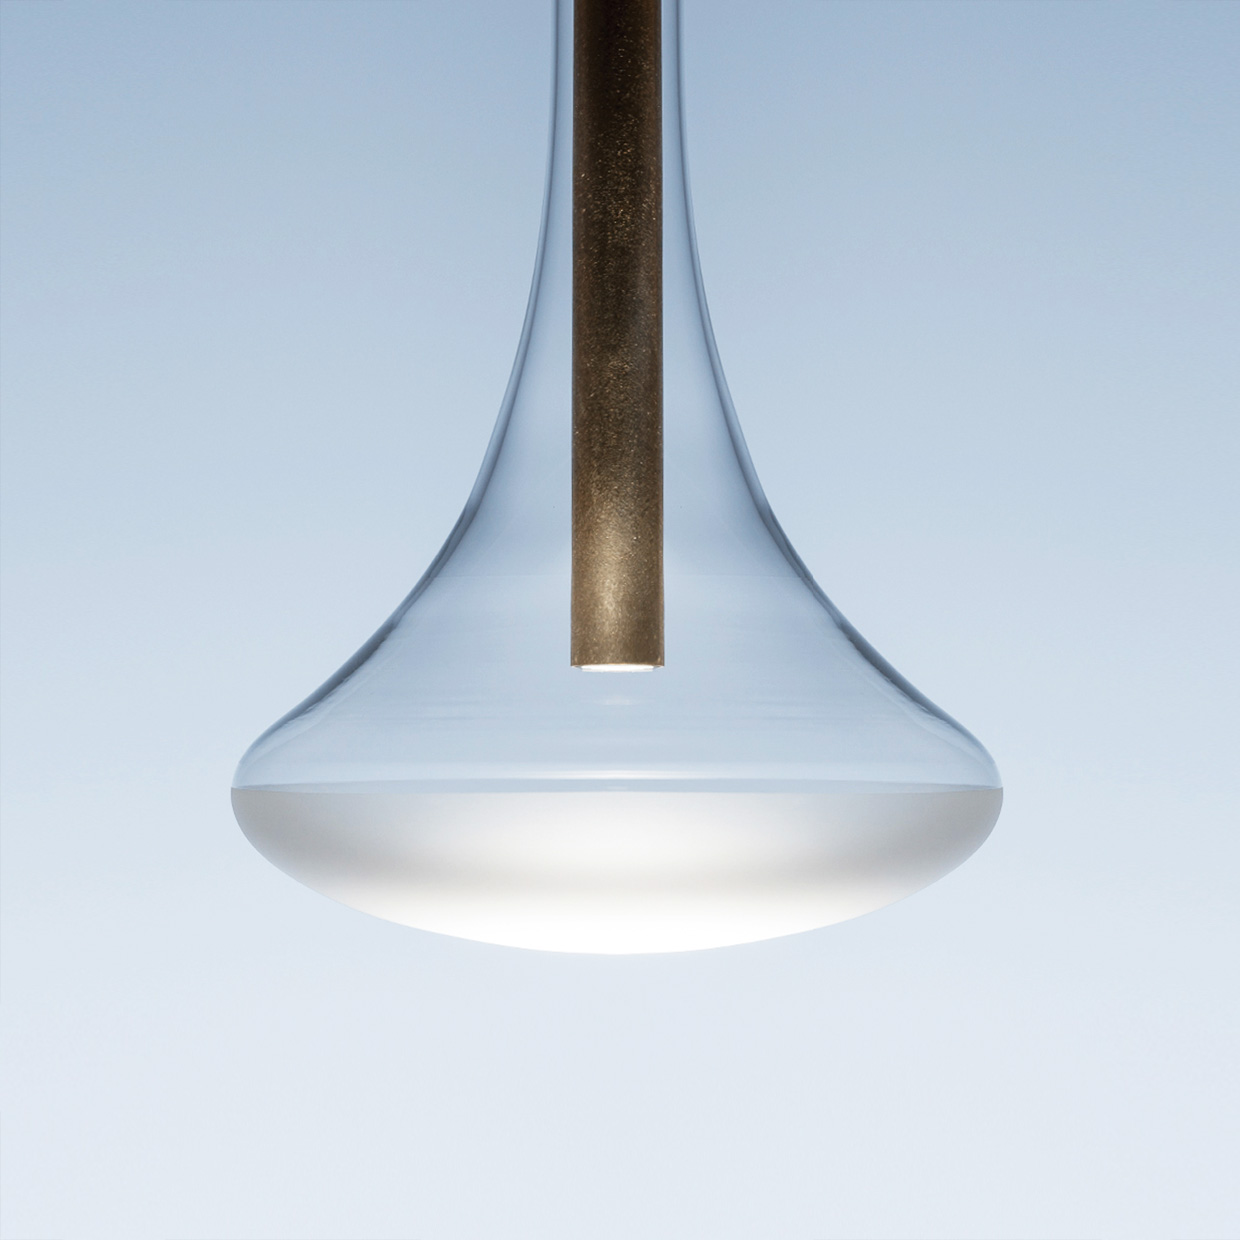 Davide groppi cathode davide groppi cathode lamp davide for Daamen interieur